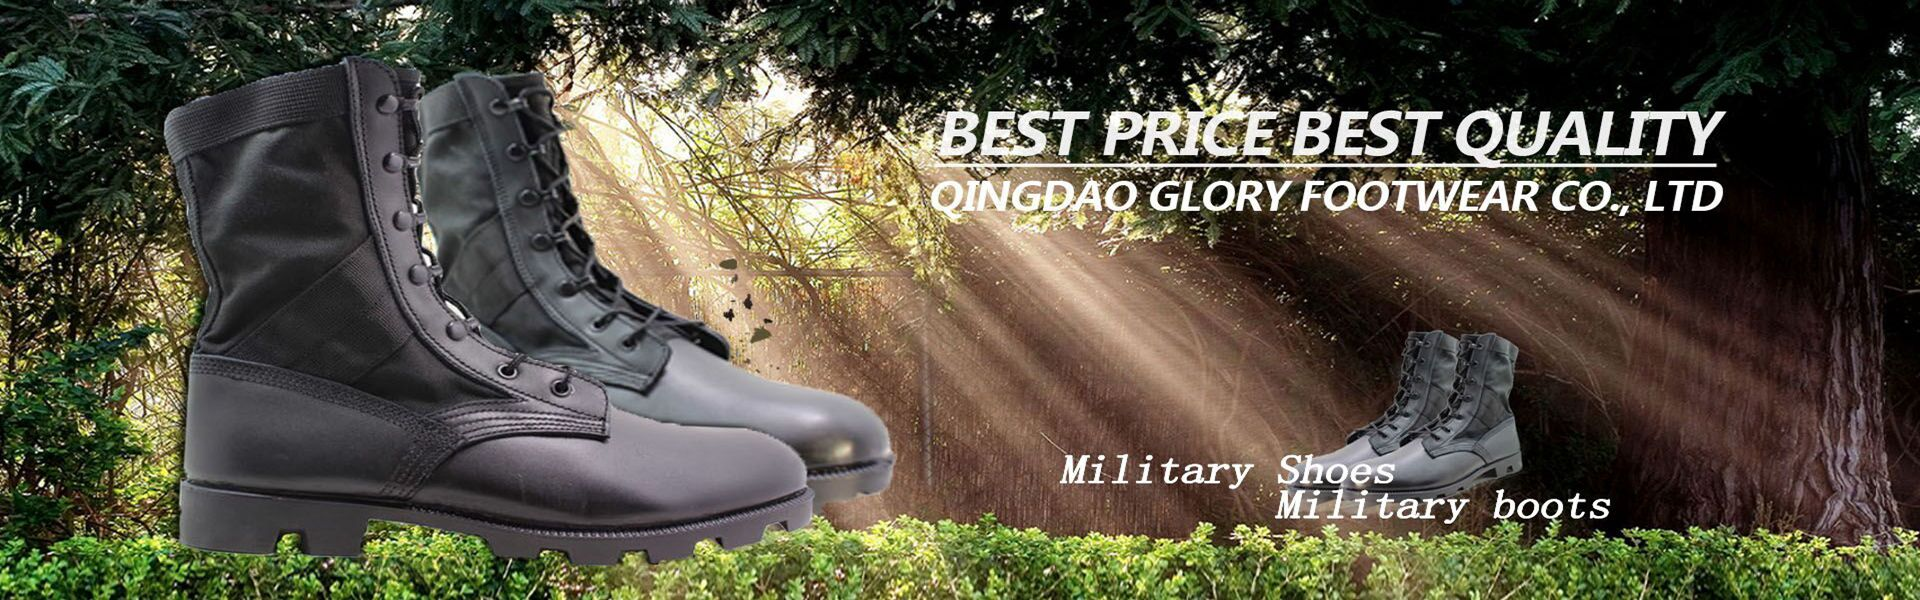 Qingdao Glory Footwear Co., Ltd.